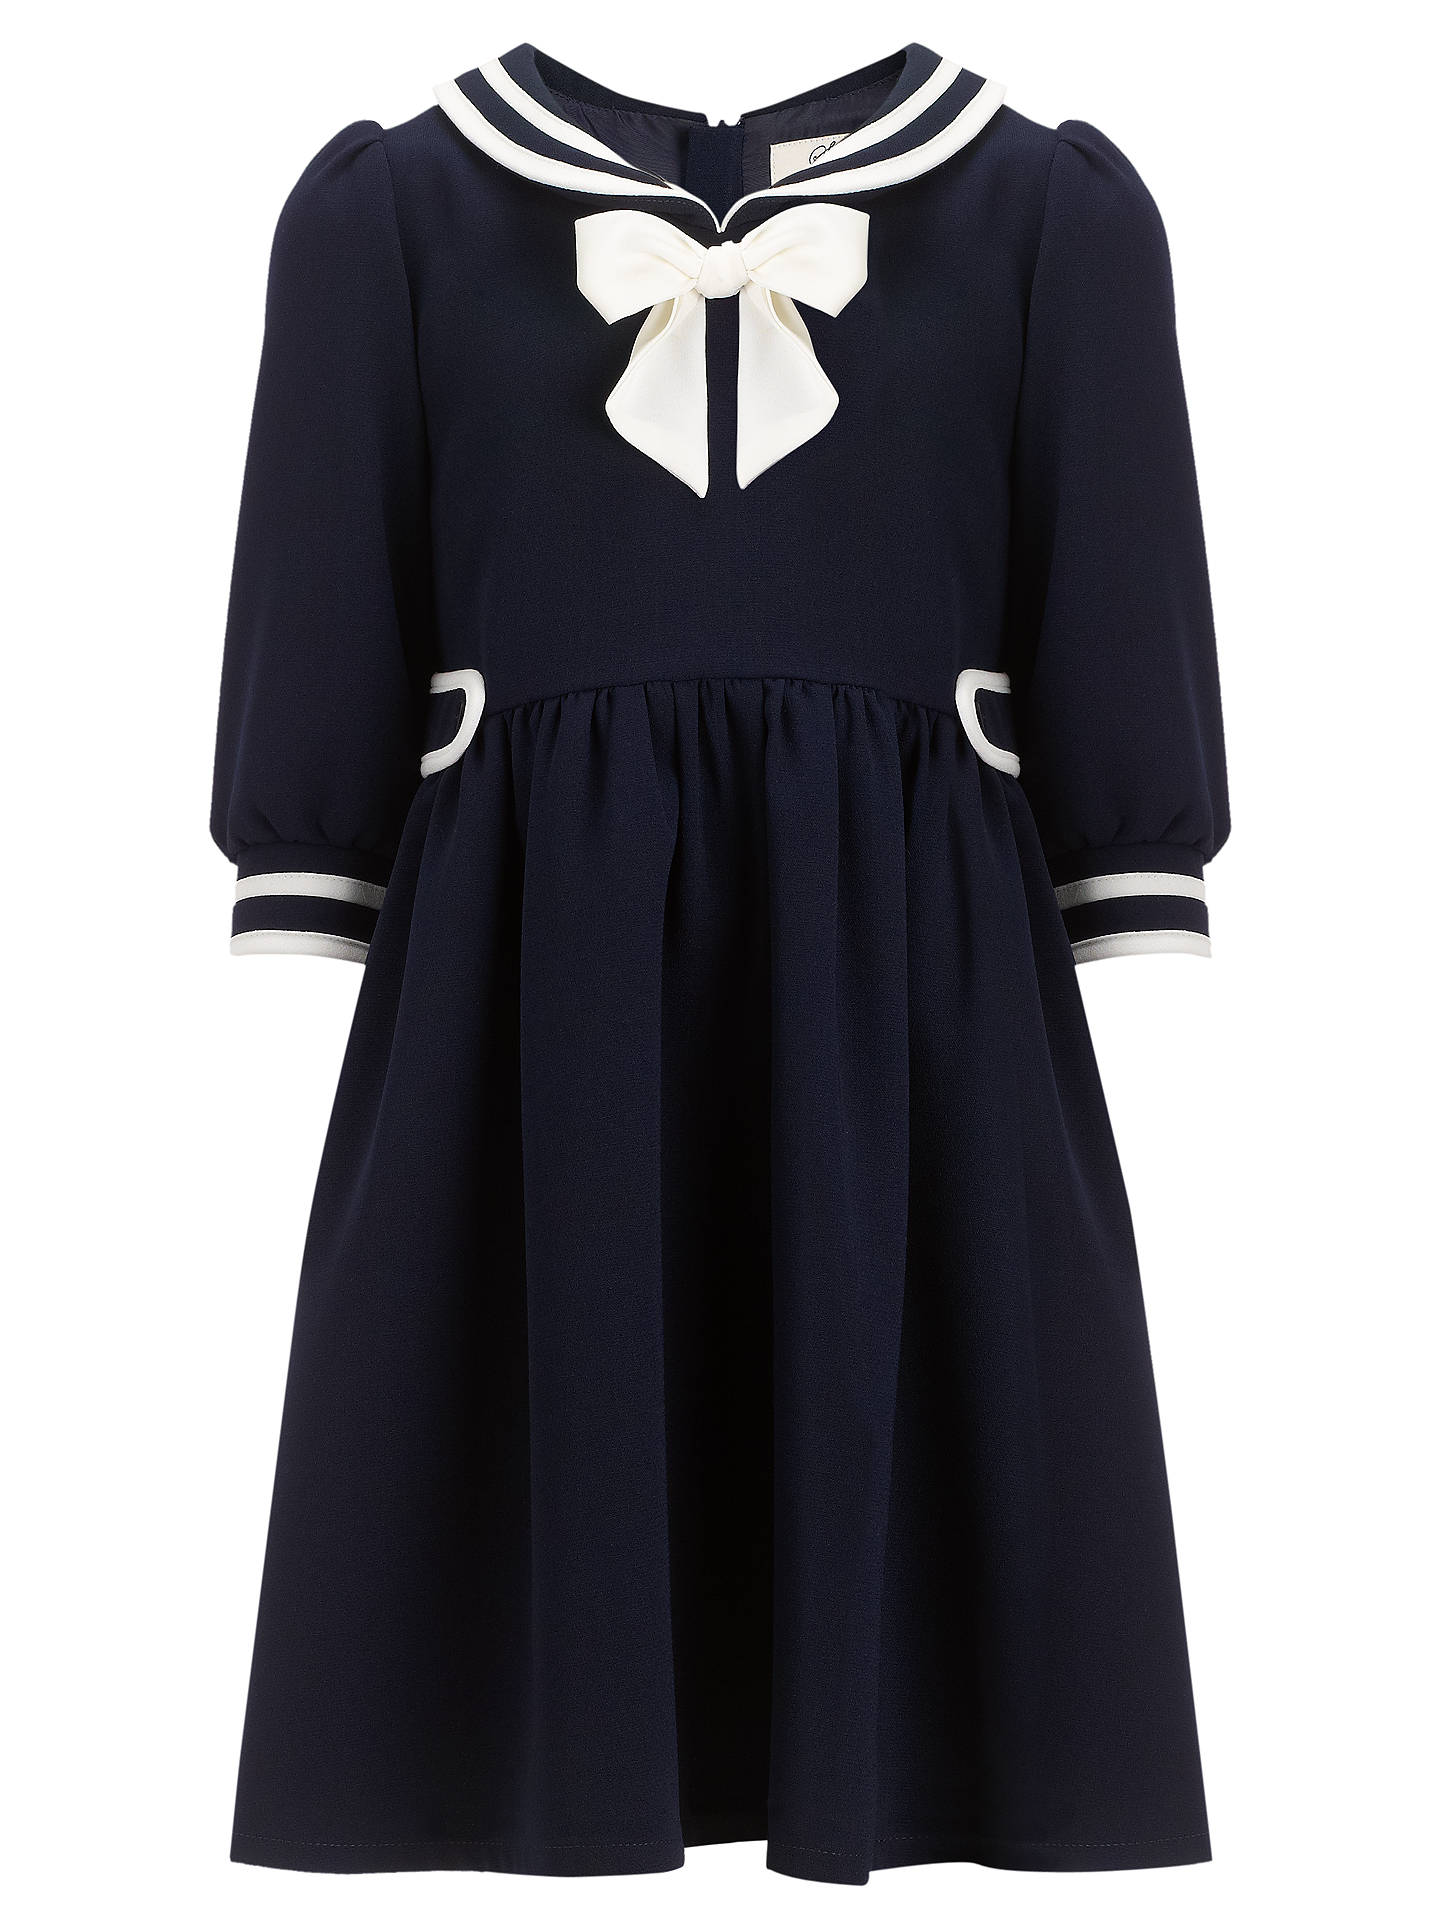 Somerset by Alice Temperley Girls' Sailor Dress, Navy at